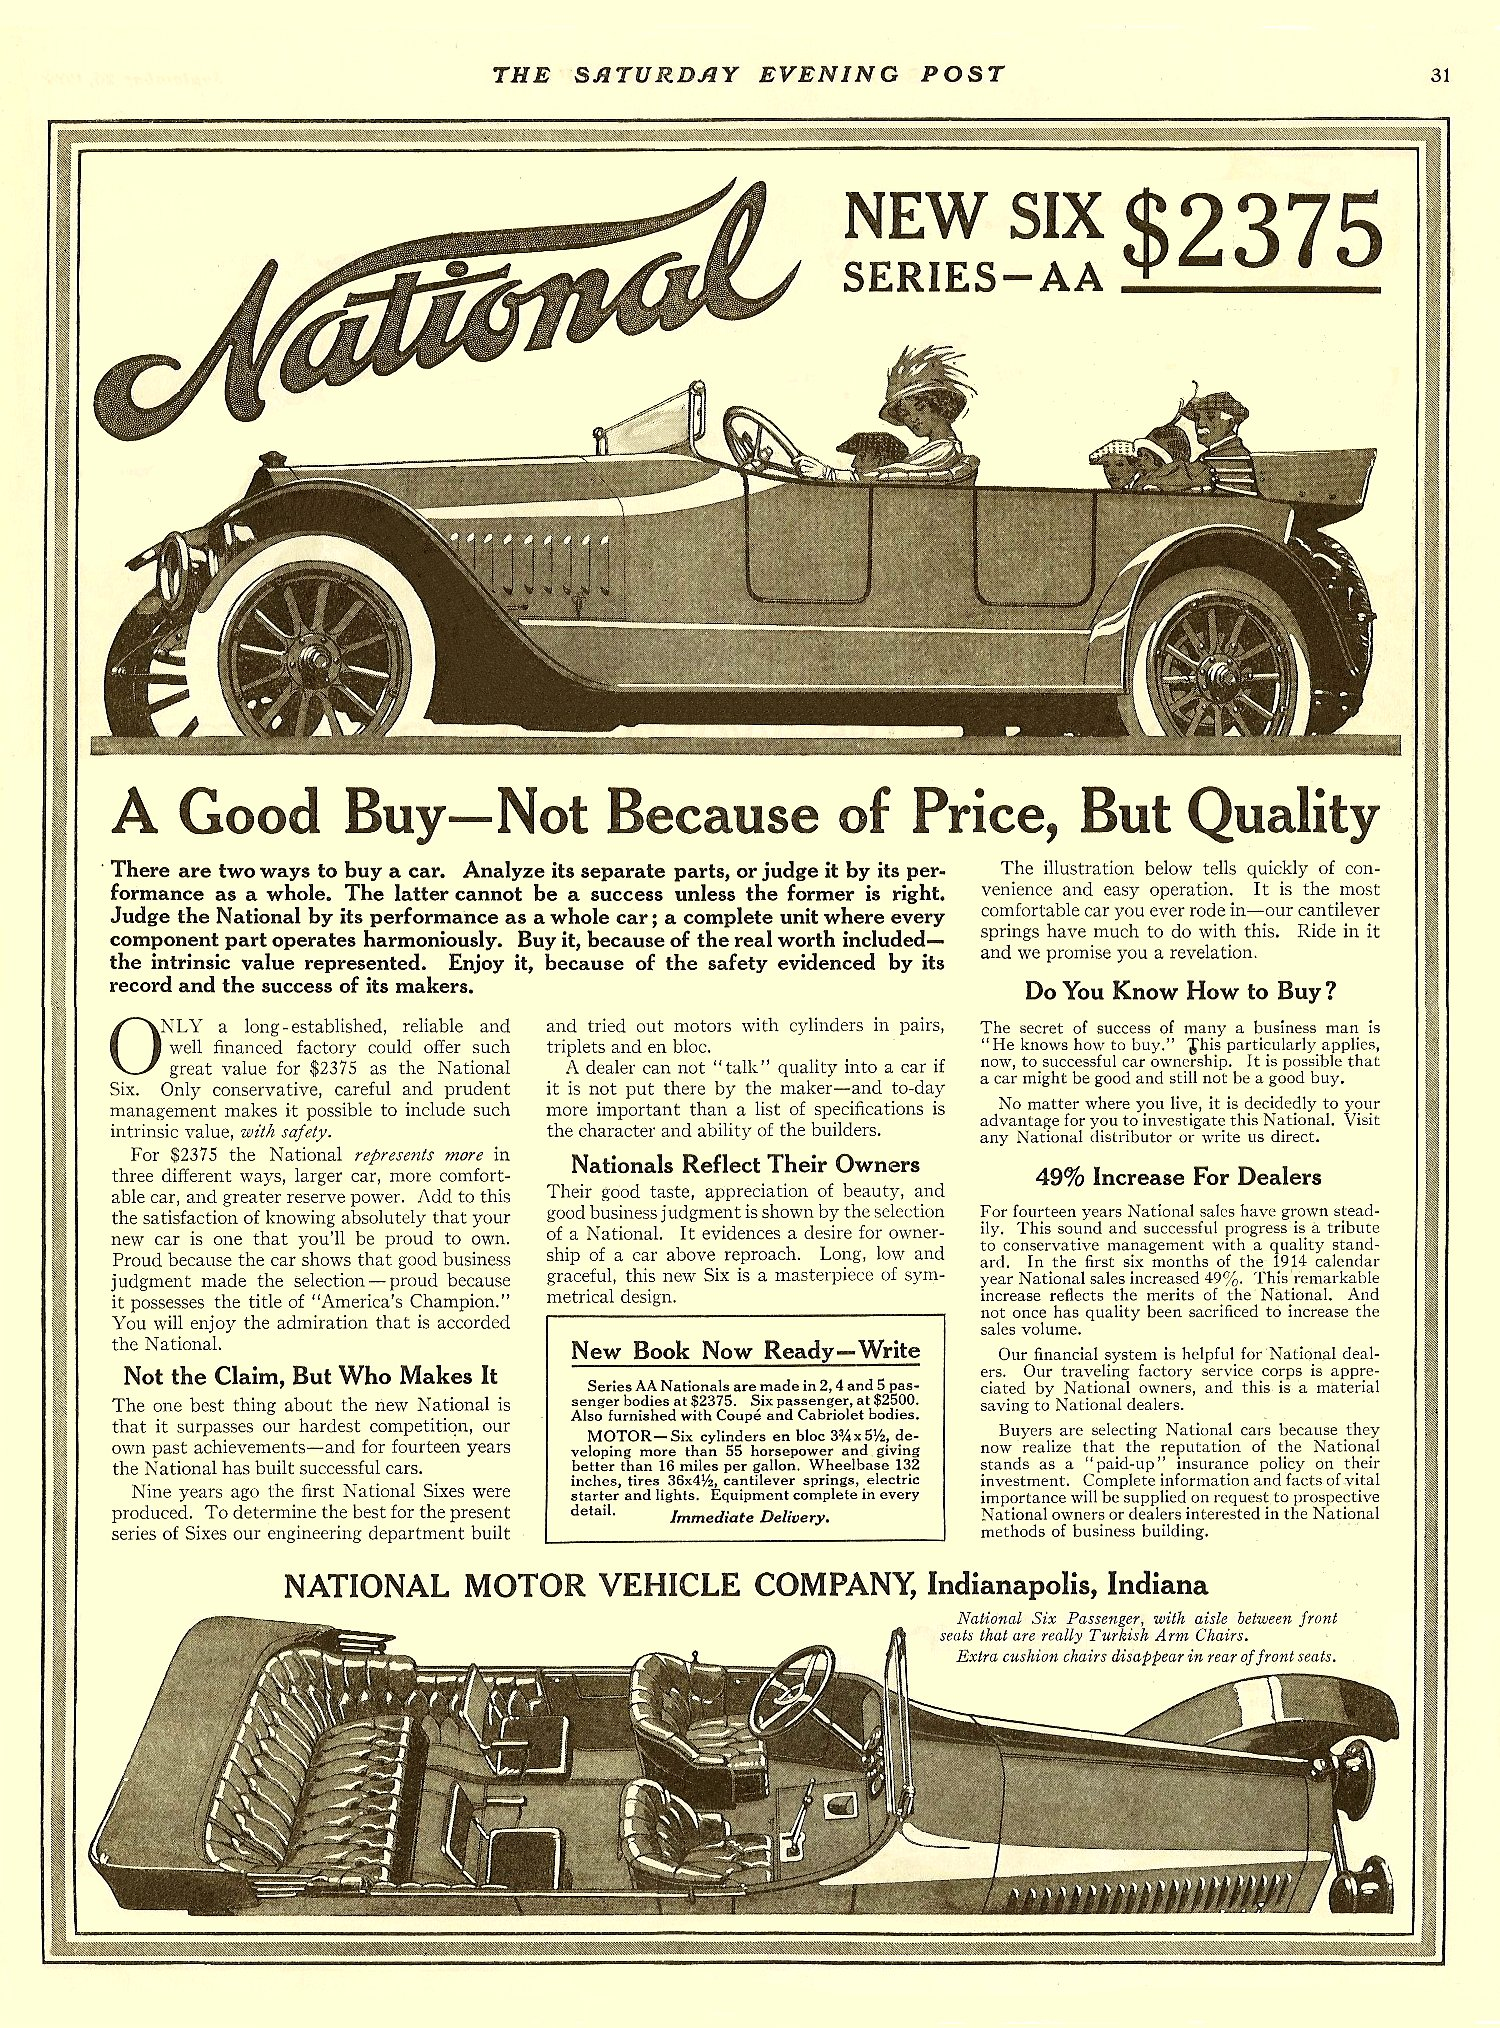 """1914 9 26 NATIONAL NEW SIX Series AA """"A Good Buy – Not Because of Price, But Quality"""" $2,375 THE SATURDAY EVENING POST Sept 26, 1914 10.25″x13.25″ page 31"""